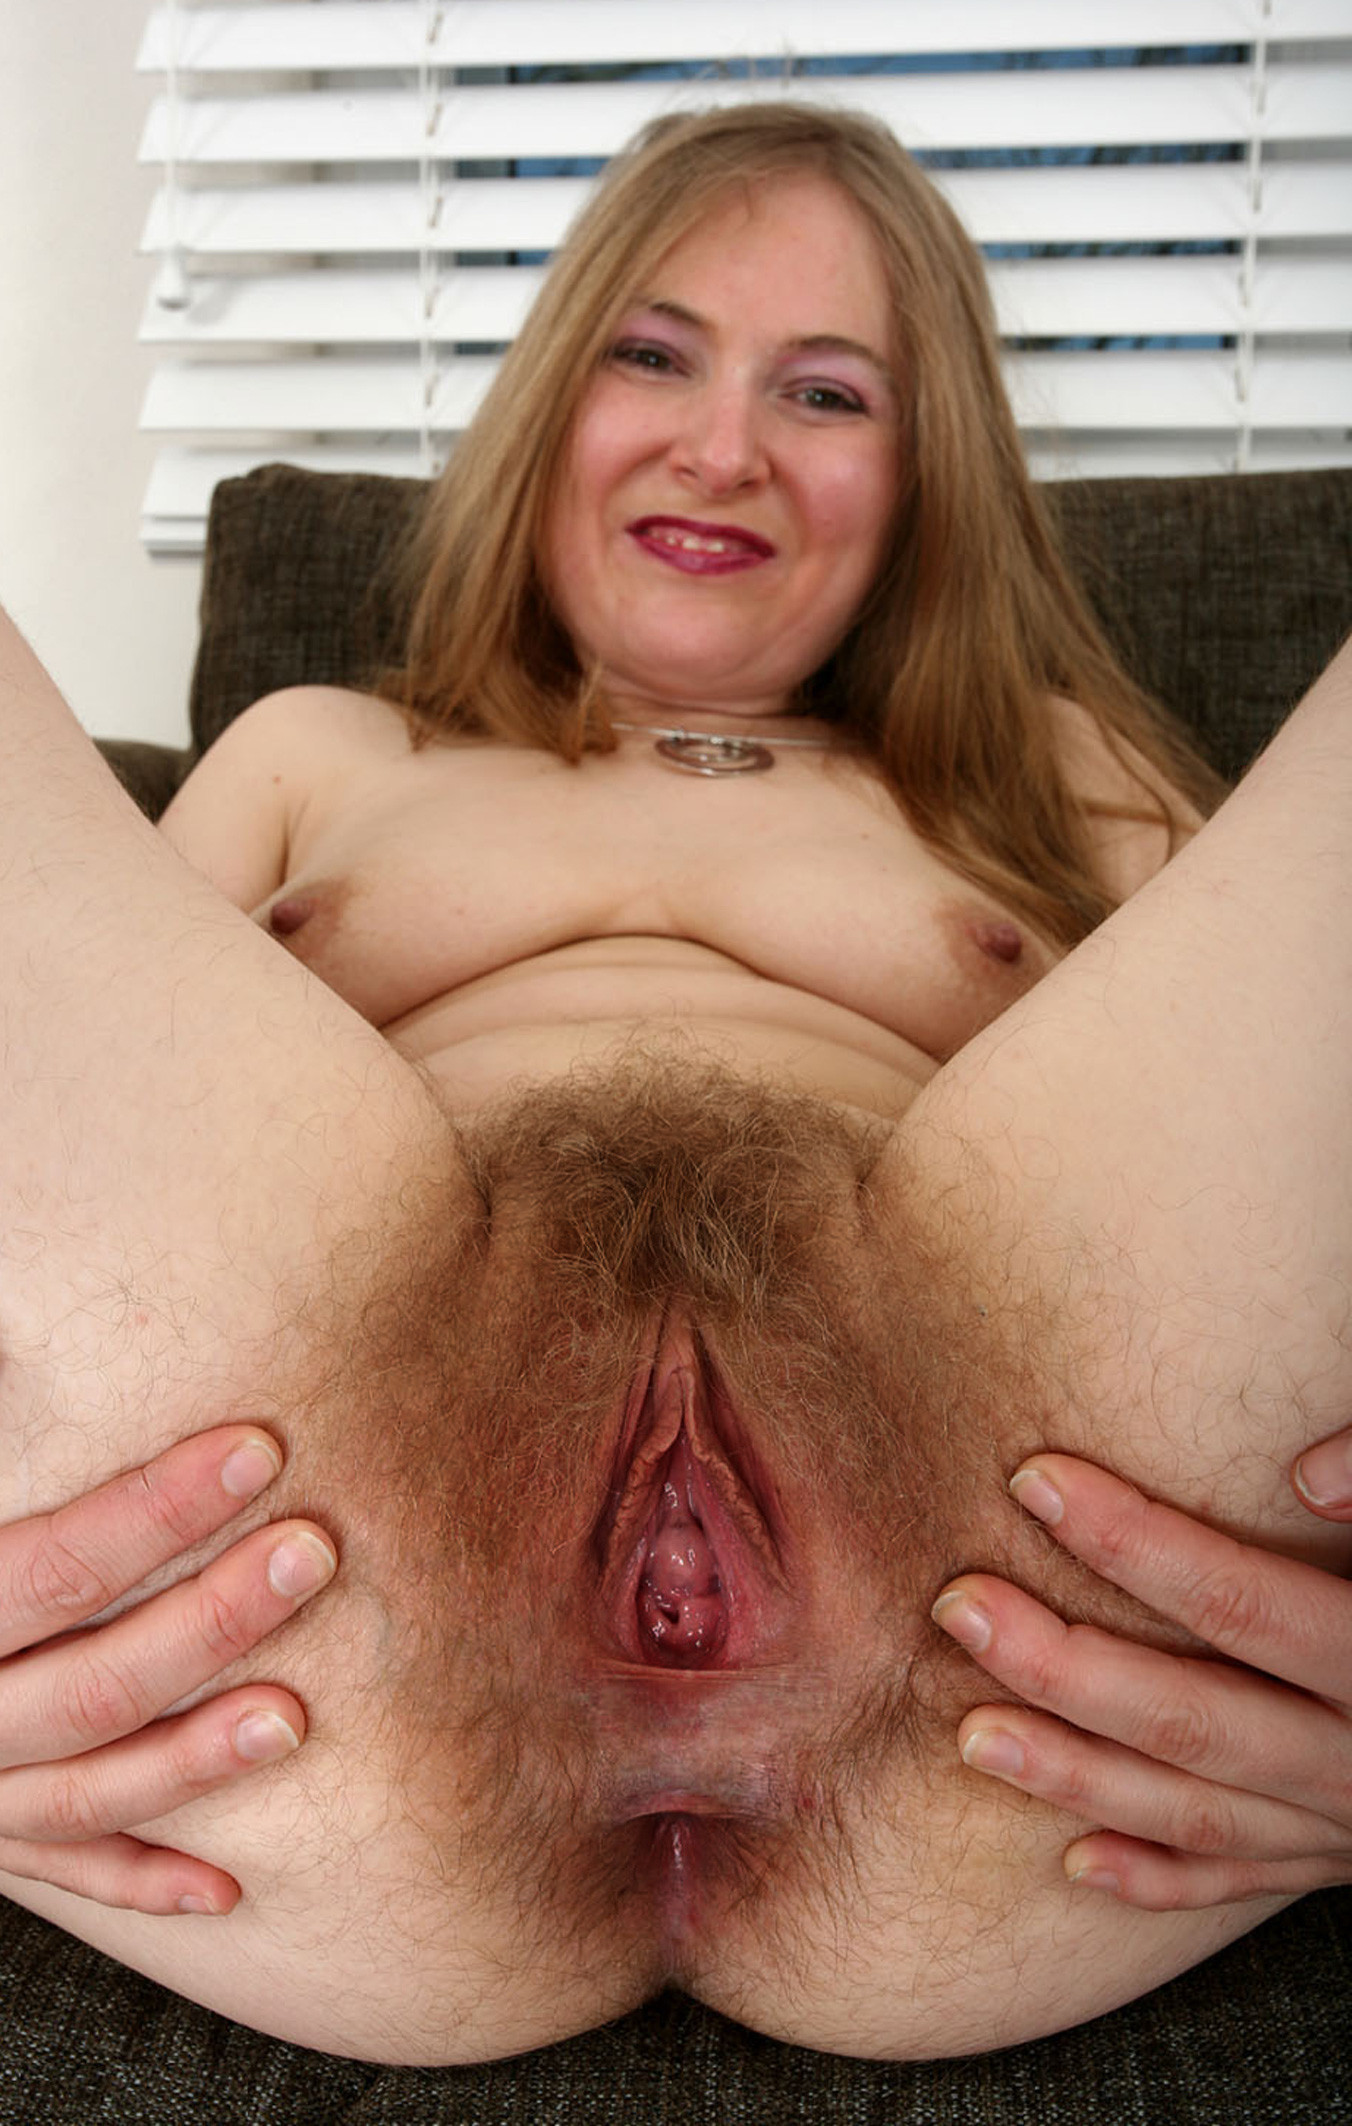 Mature pussy spread wide